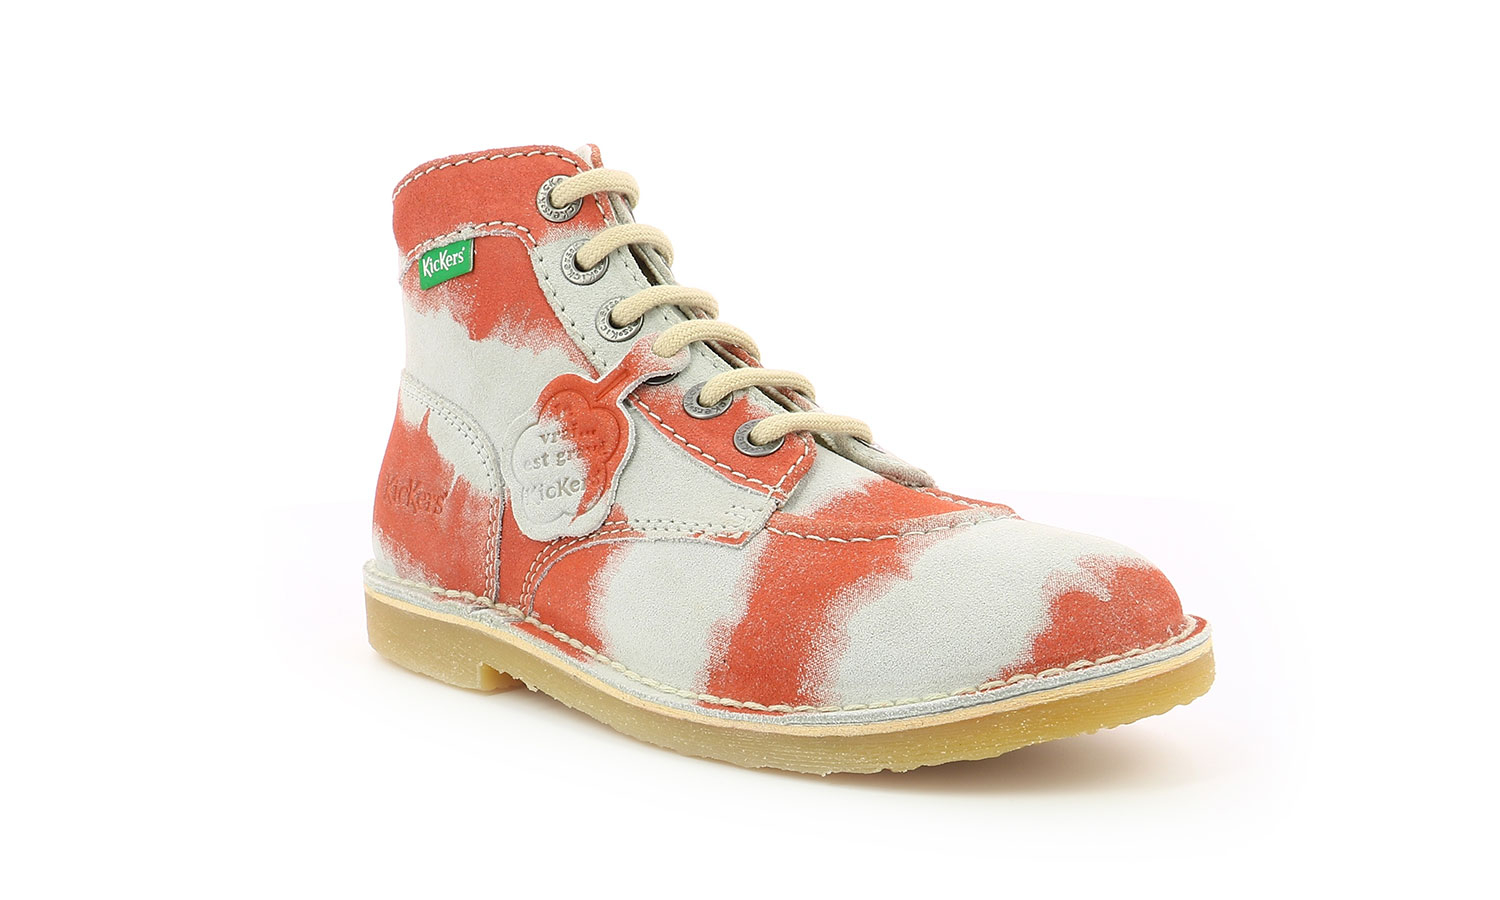 Chaussures Femme ORILEGEND ROSE TIE AND DYE FEMME Kickers